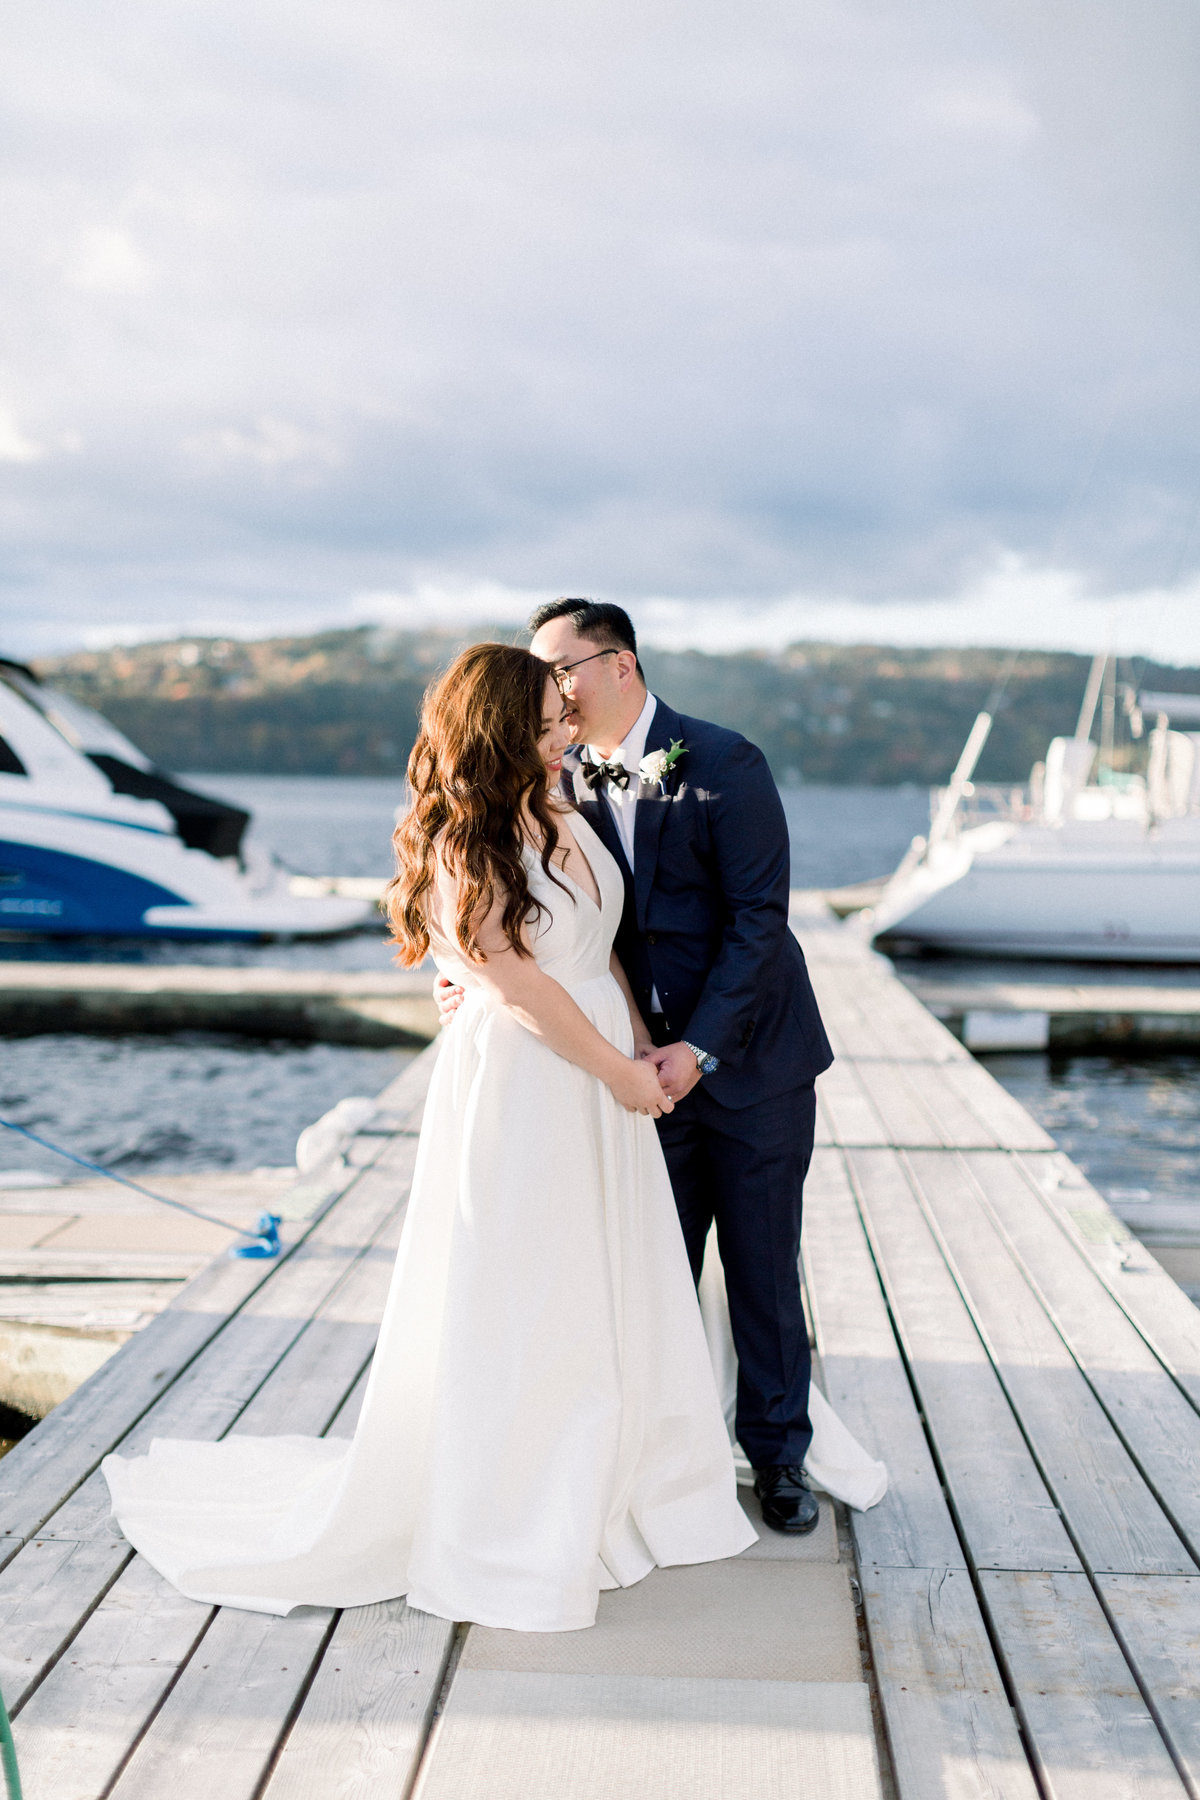 Brian&Jess-Wedding-Sunset-JillRobertsPhotography-HalifaxWeddingPhotographer-2